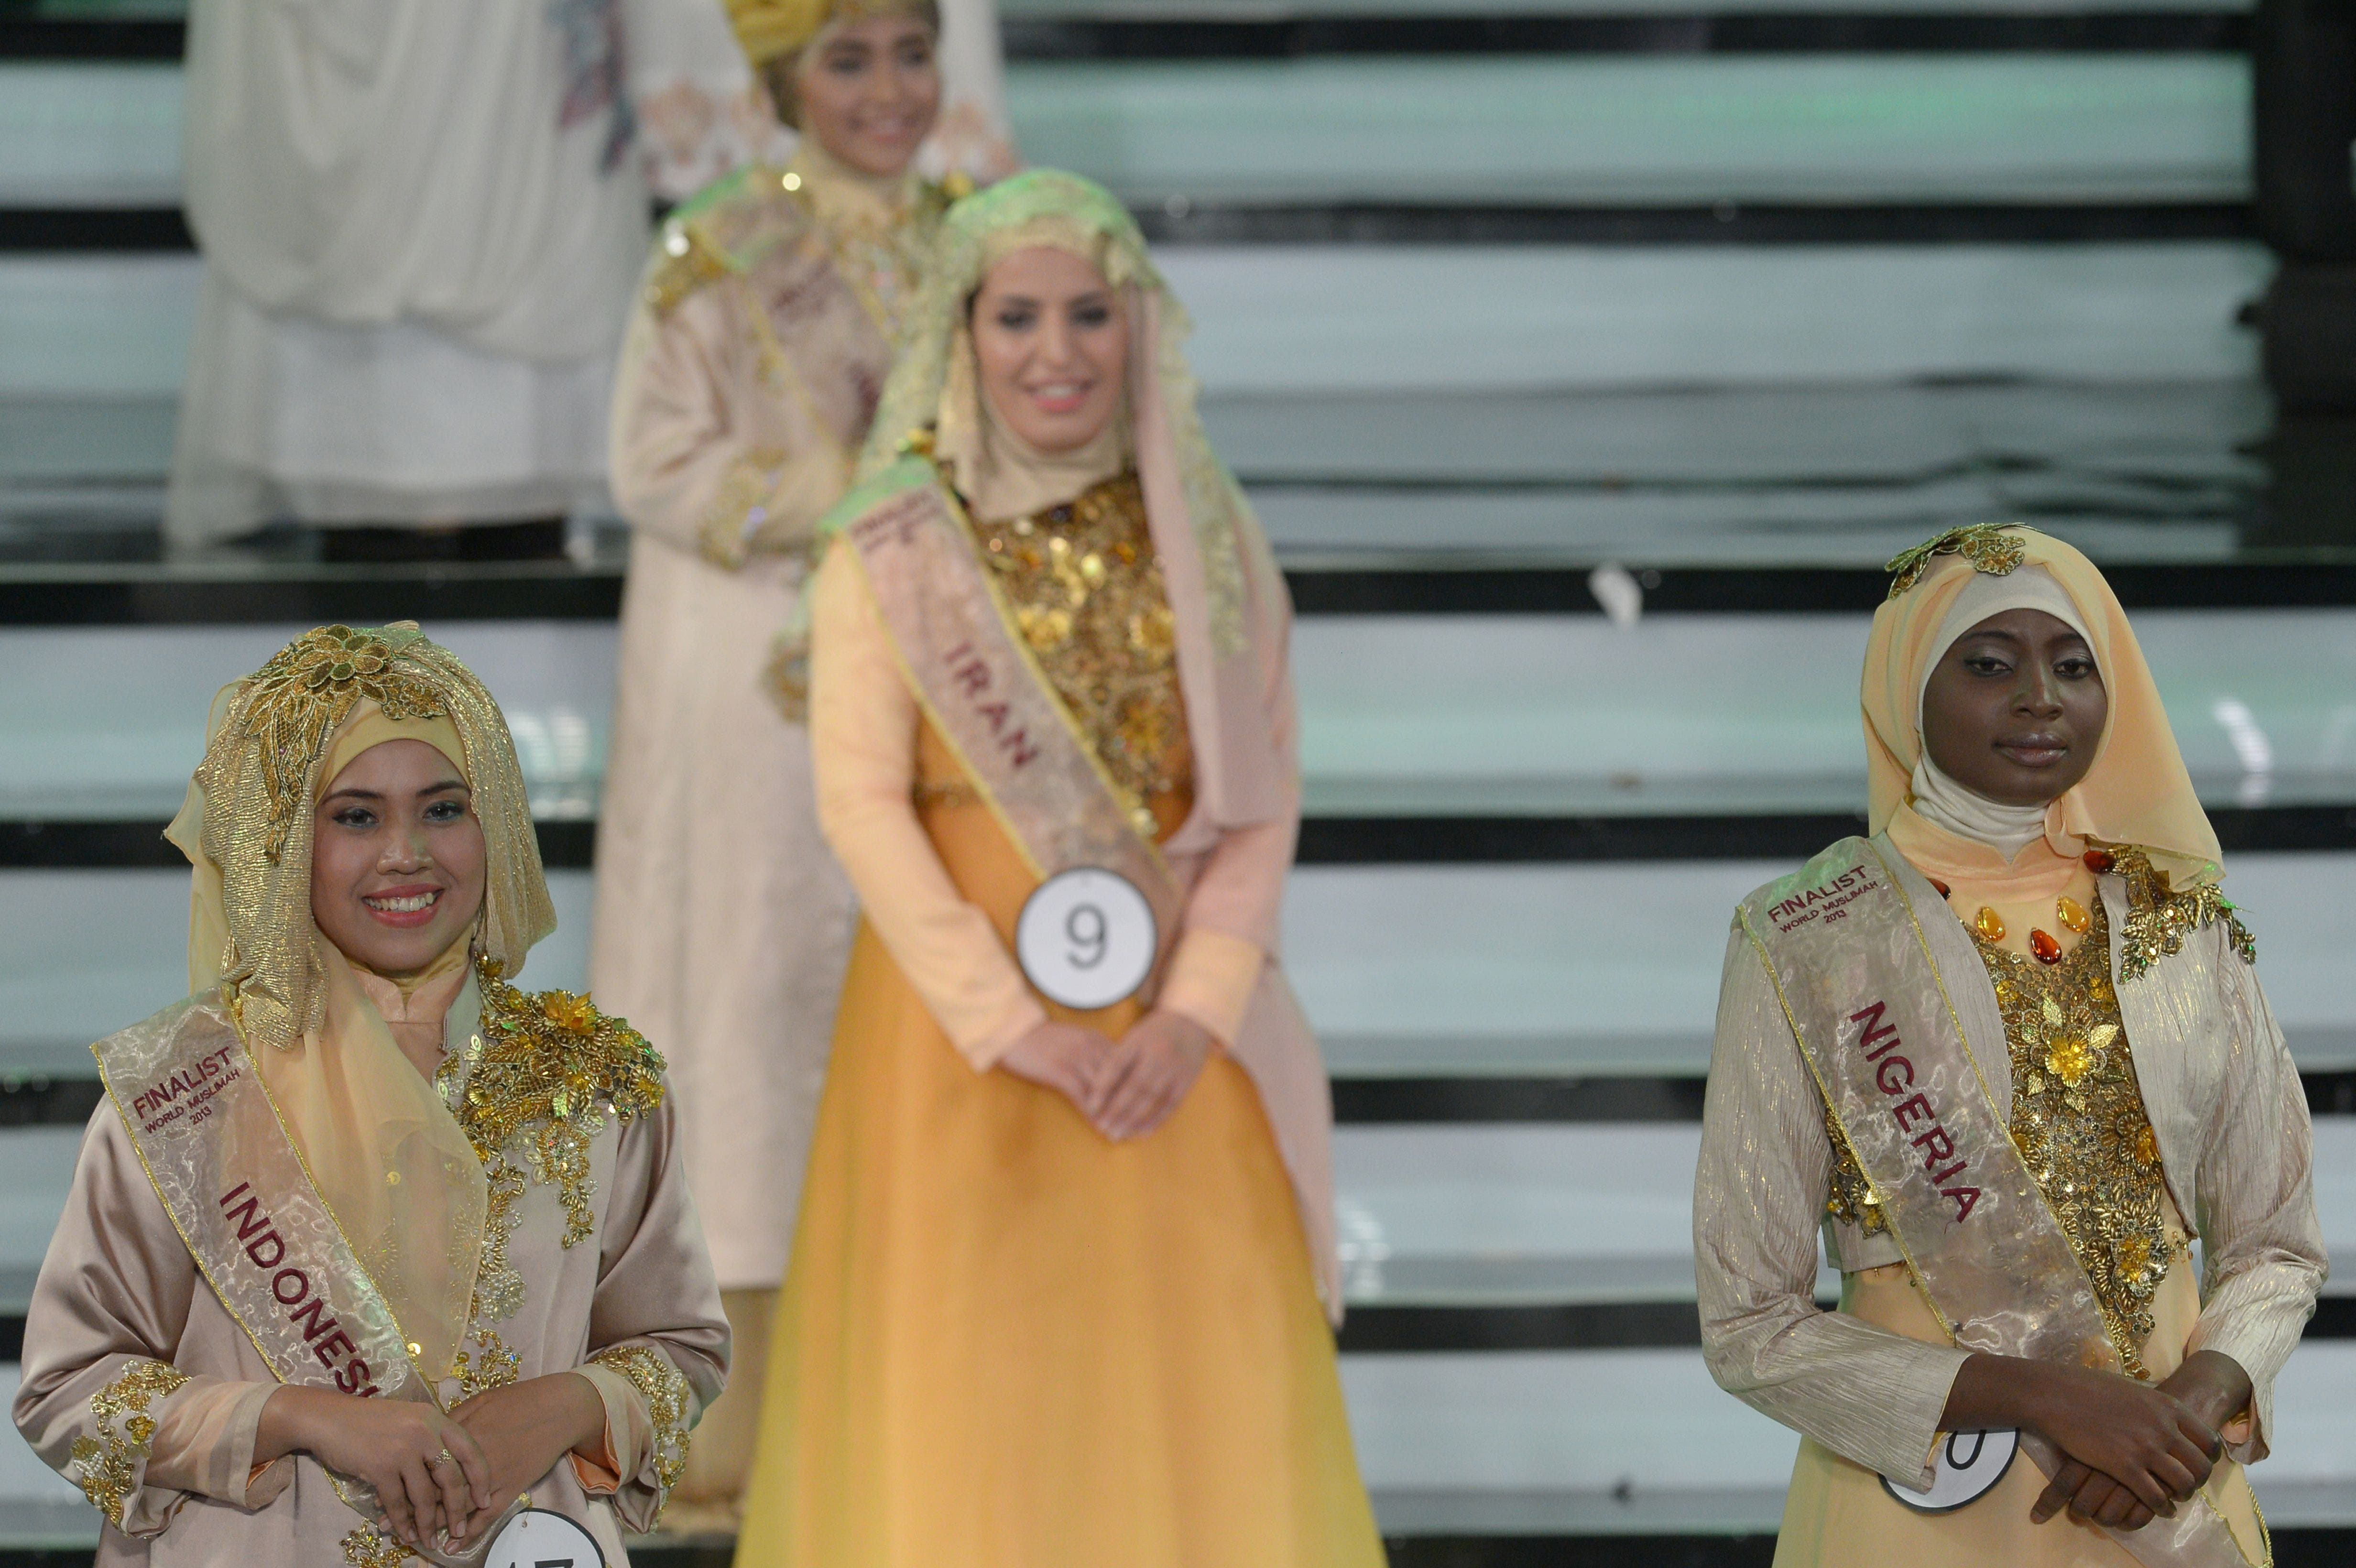 The newly crowned the Muslimah World 2013 Obabiyi Aishah Ajibola (C-R) of Nigeria is congratulated by contestants during the Muslimah World competition in Jakarta on Sept. 18, 2013. (AFP)